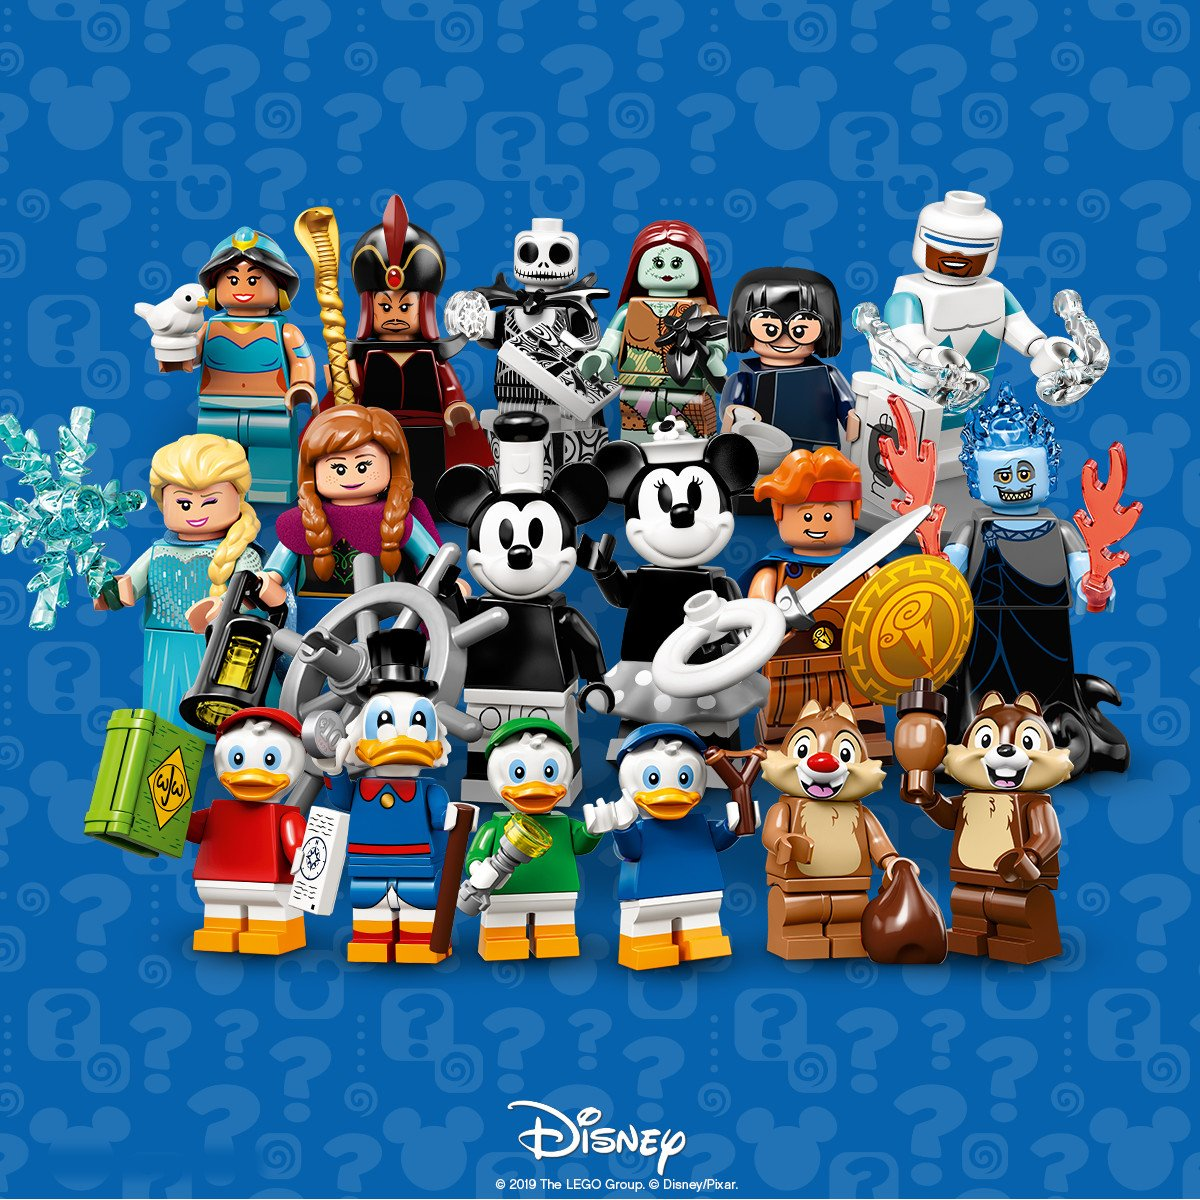 LEGO 71024 Minifigures The Disney Series 2